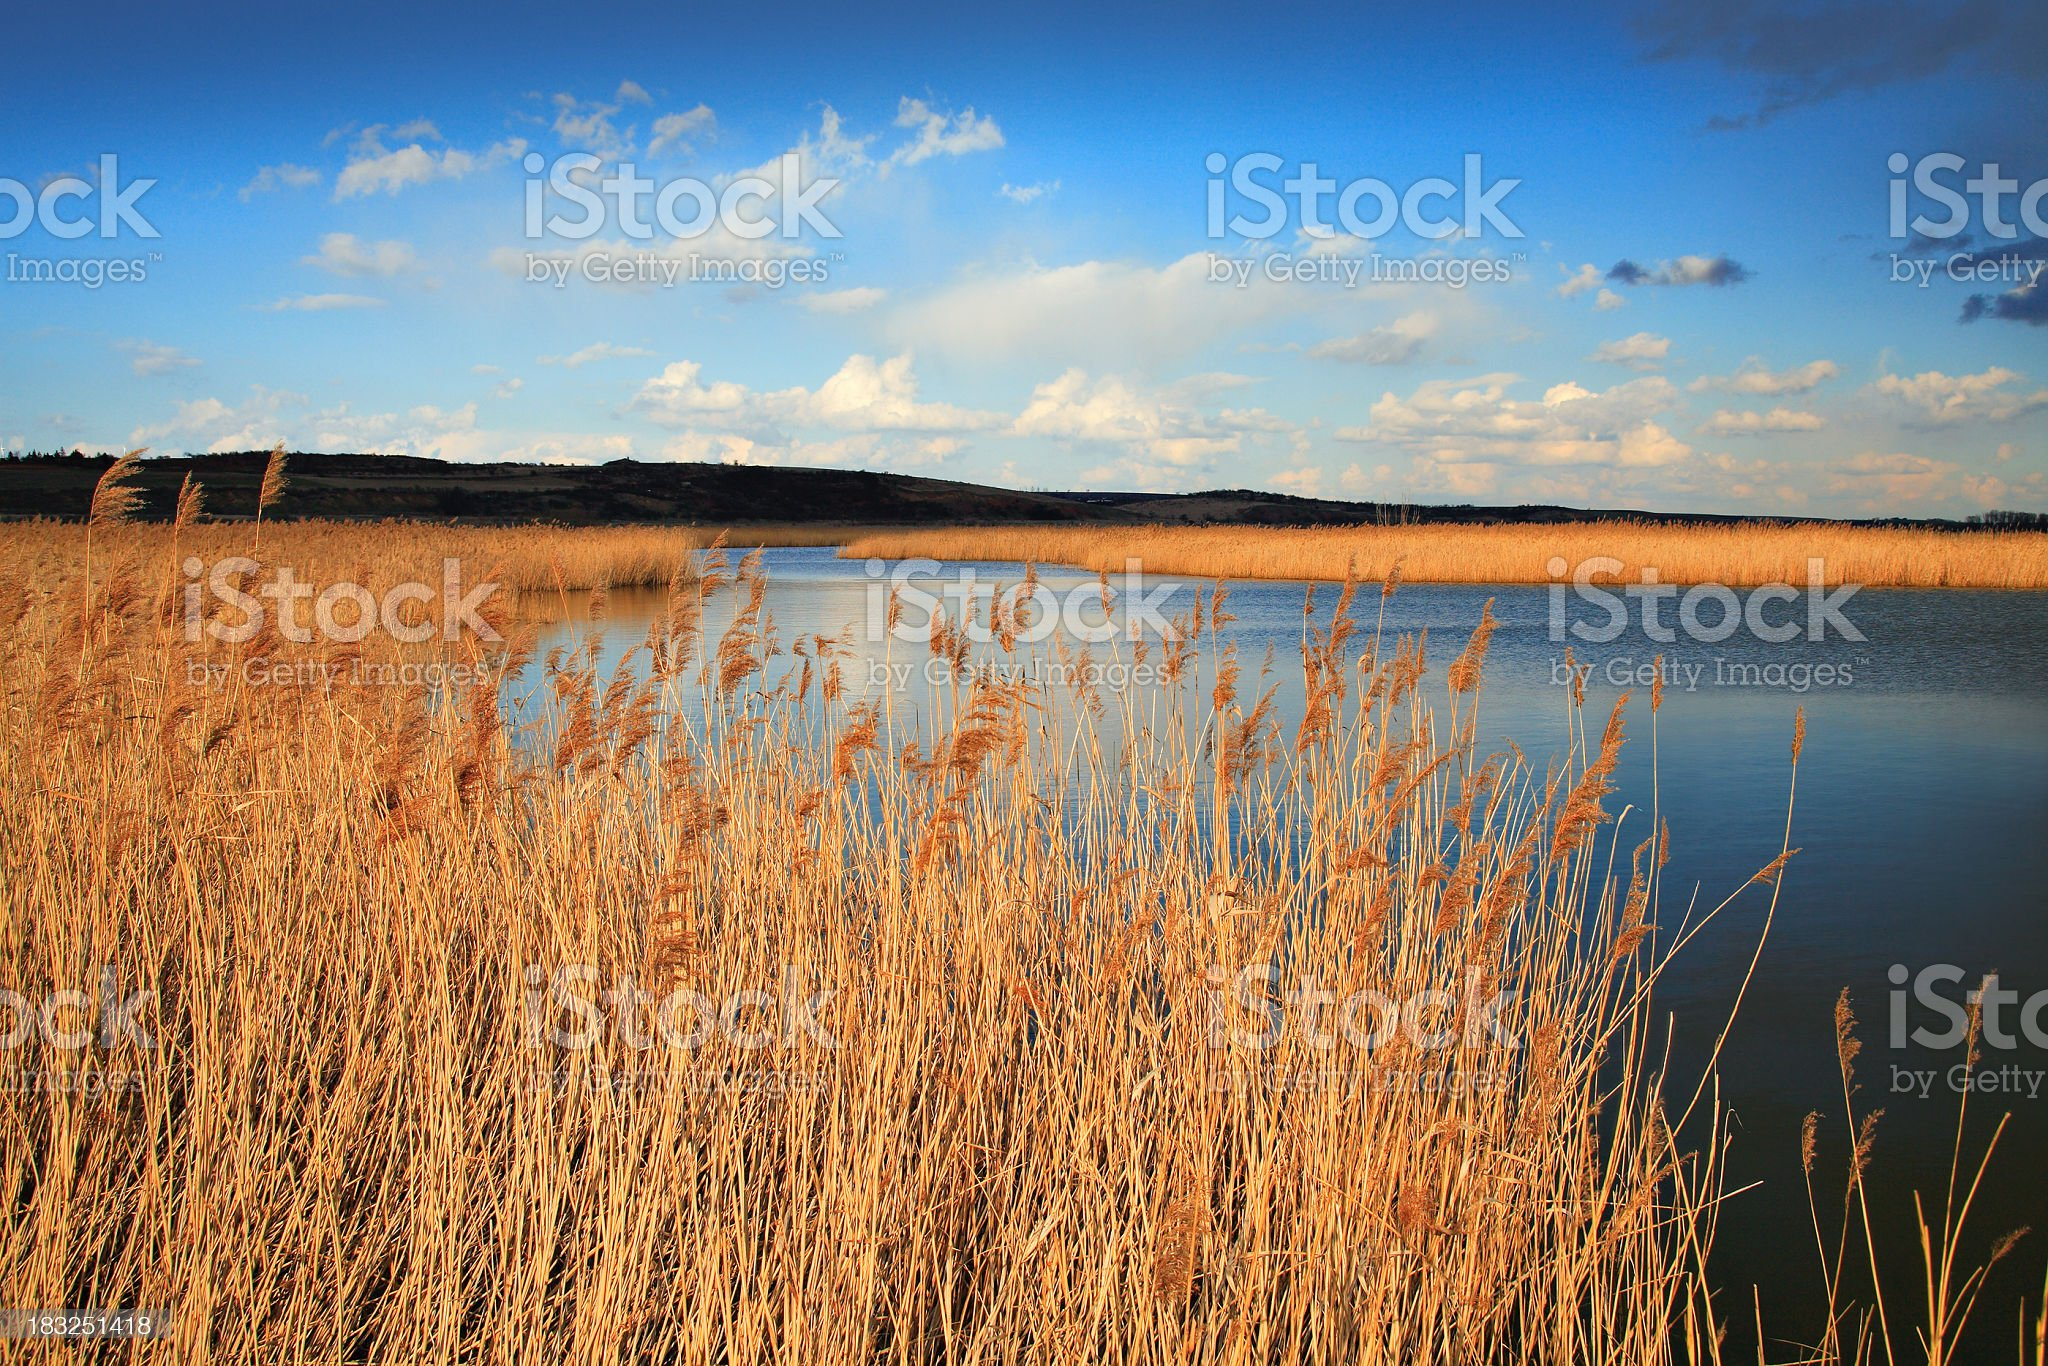 Reed royalty-free stock photo